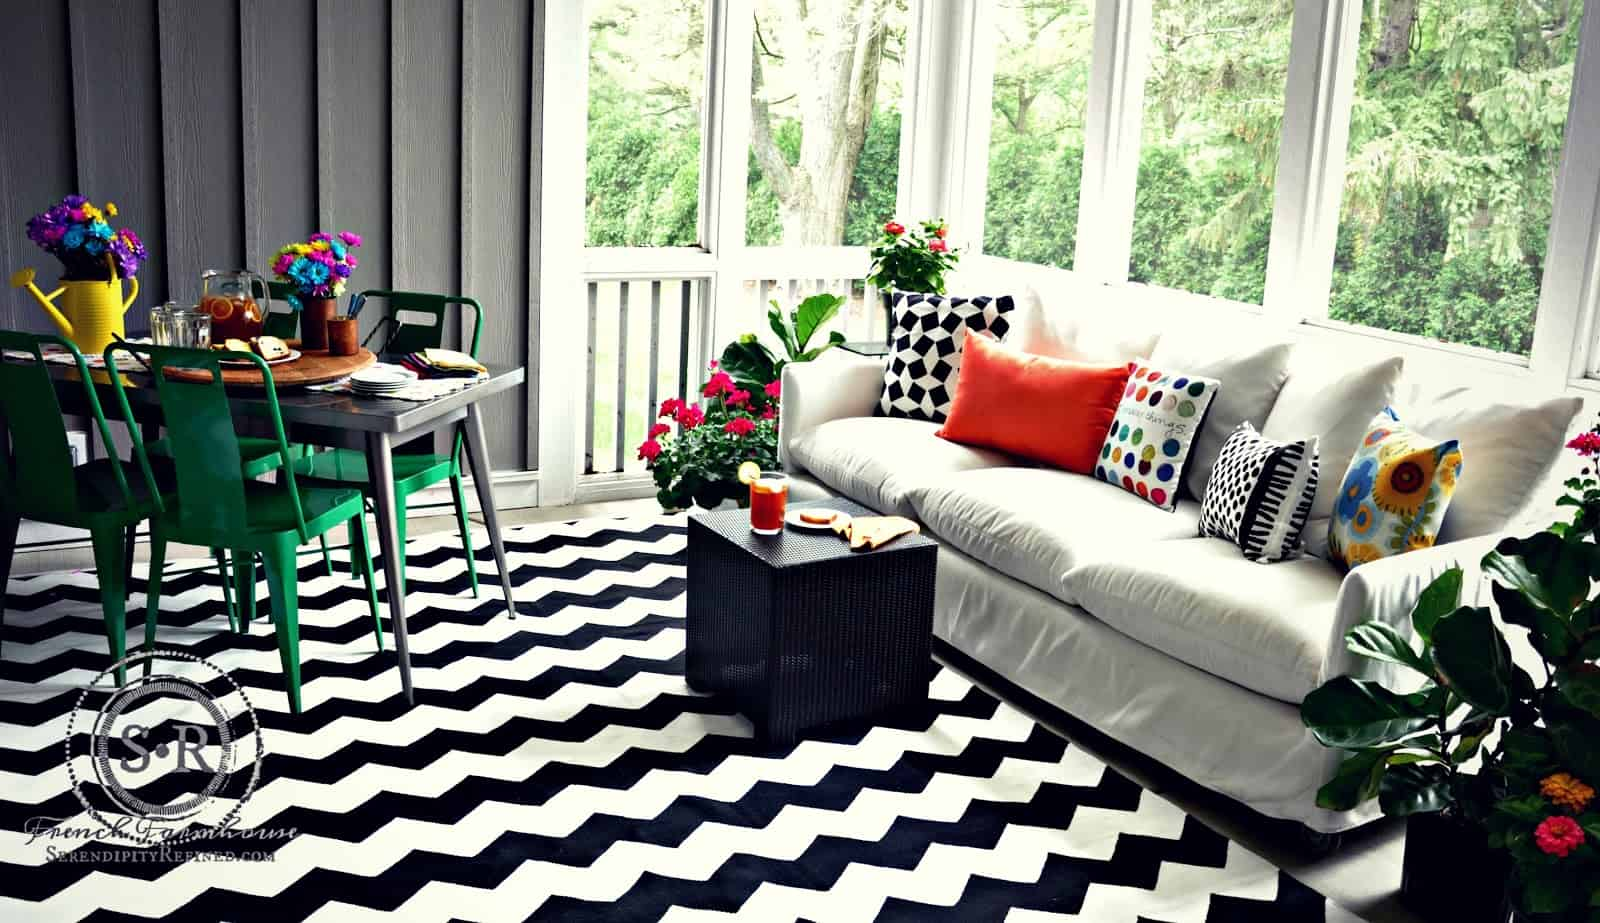 Black and white geometric outdoor living room screened porch